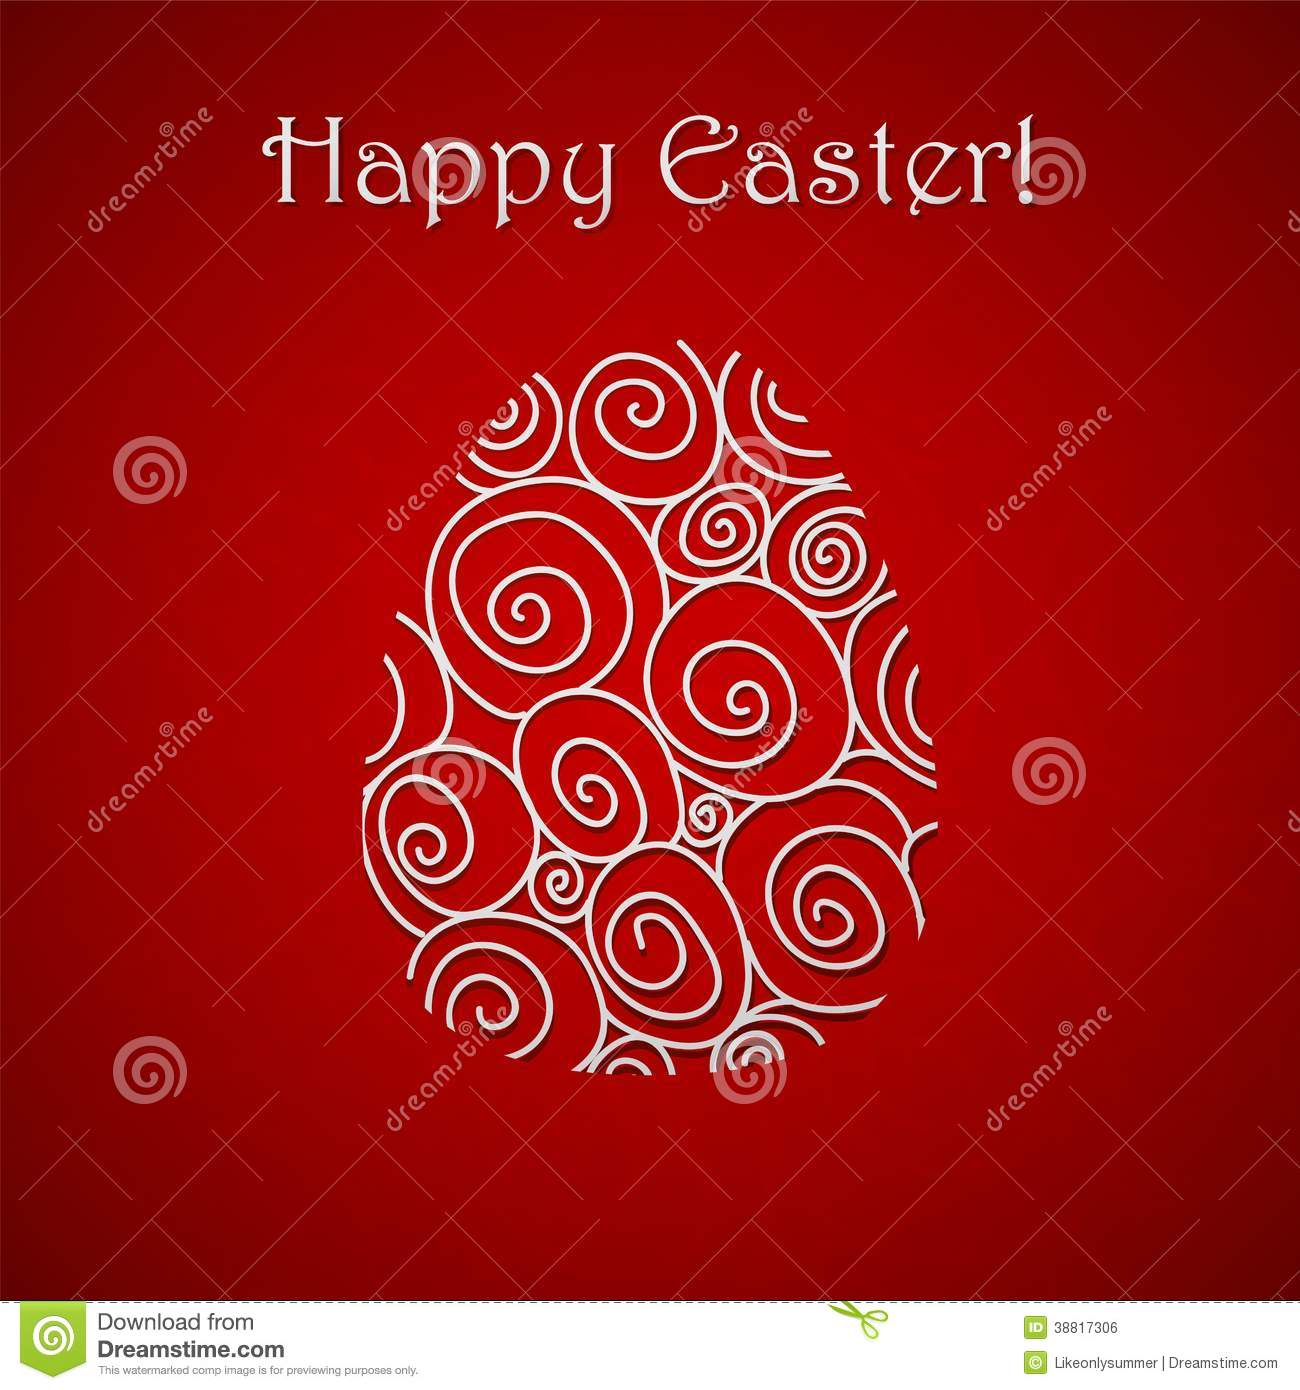 Happy Easter Doodle Simple Red Greeting Card Stock Vector